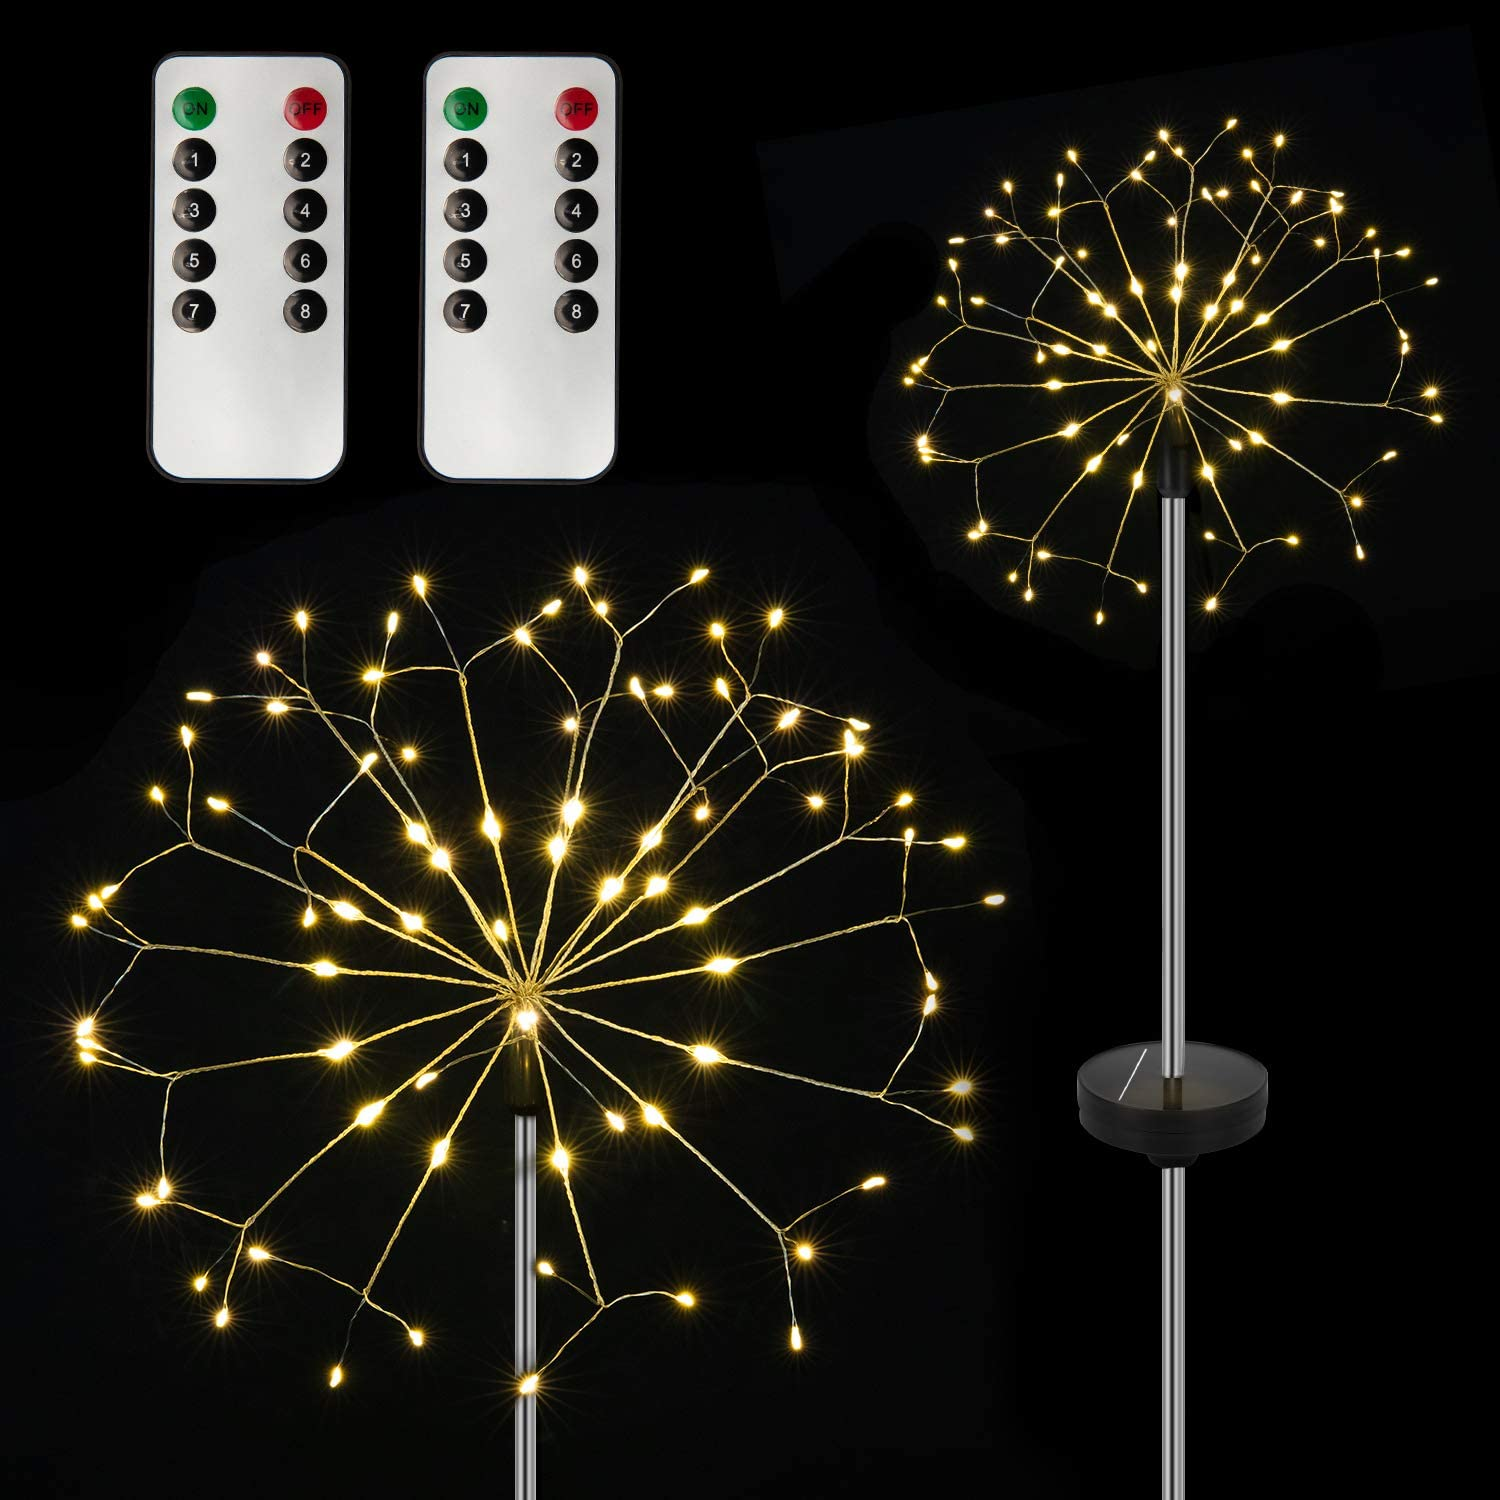 Direct sale of Ranking TOP9 manufacturer KKAAyueqin 2 Pack Solar Fireworks 8 Lights LED Mode 120